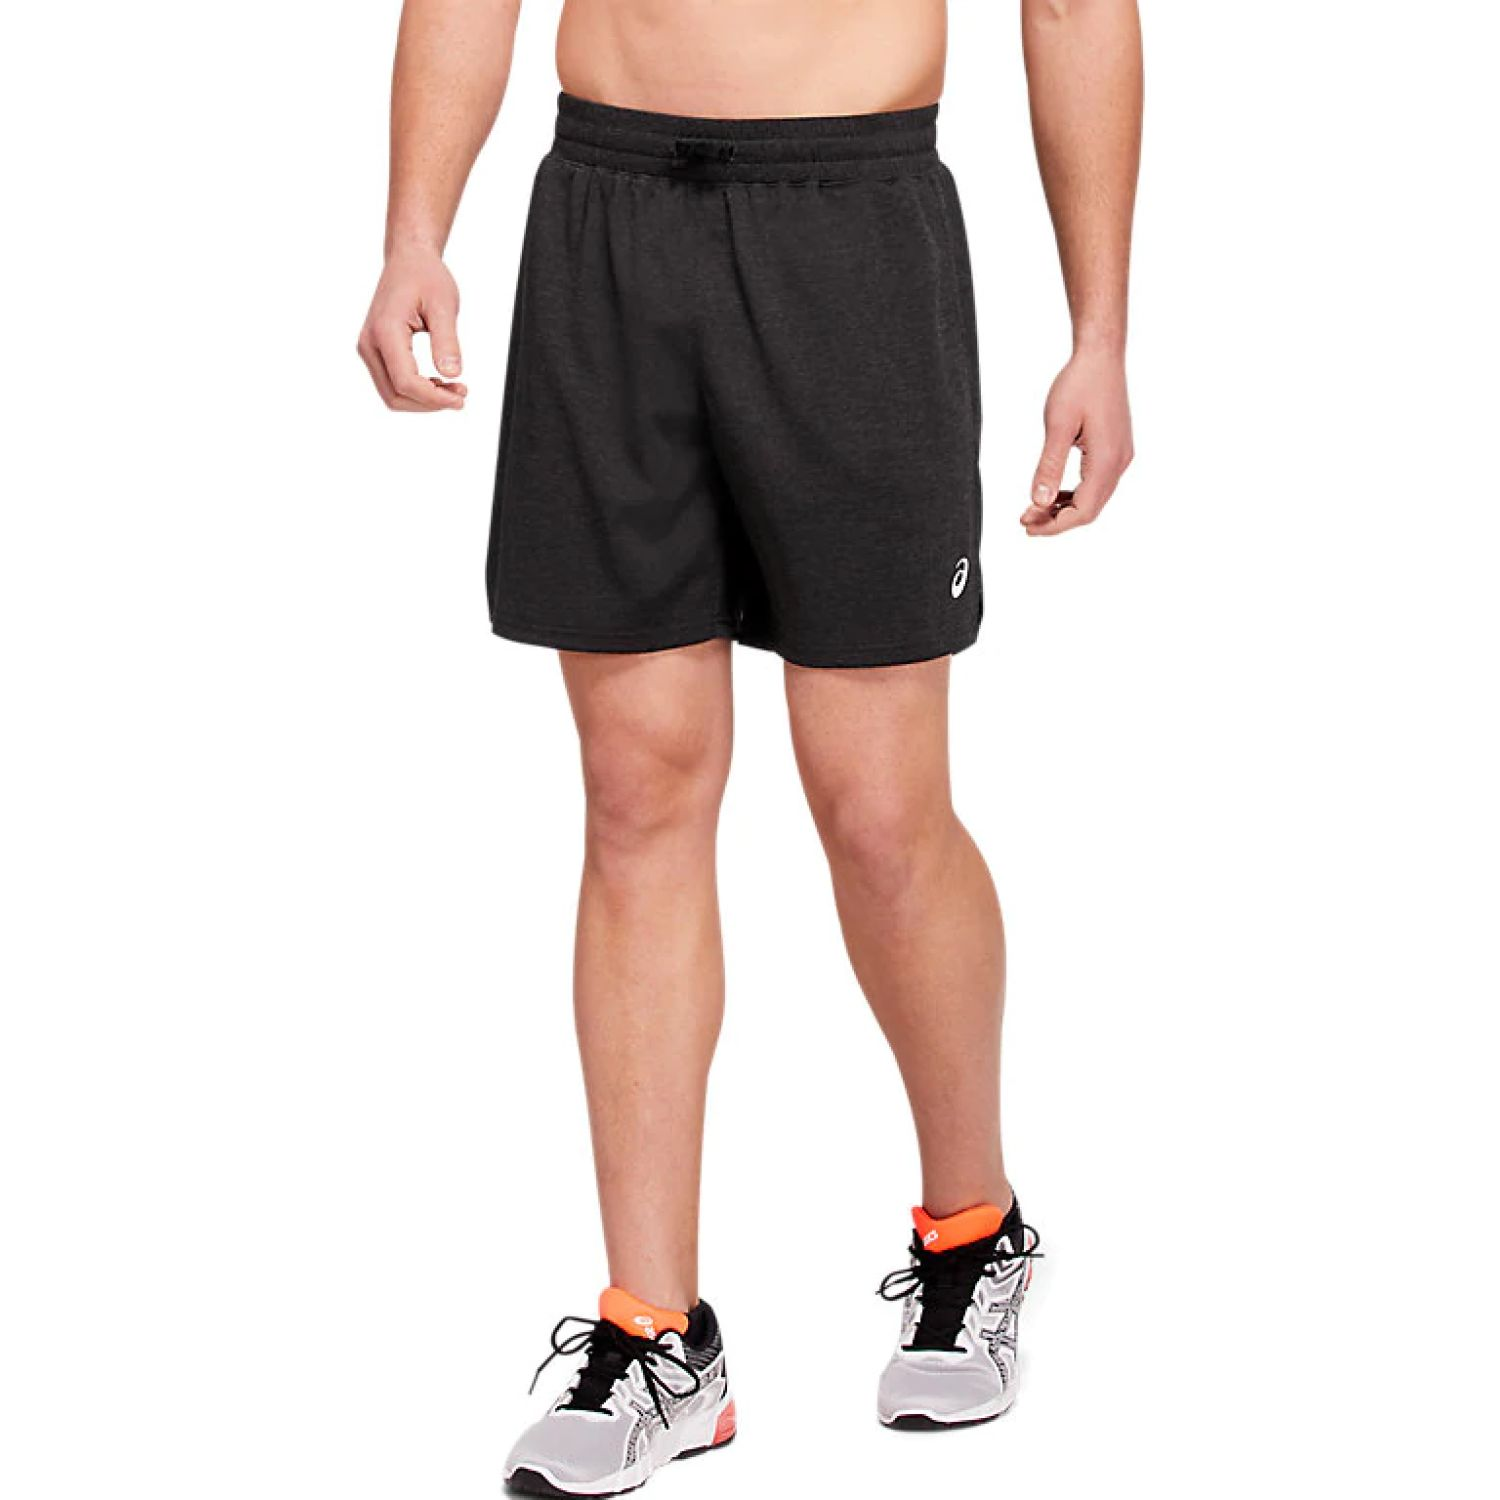 Asics M 7in Knit Train Sho Dark Grey Heathe Negro Shorts deportivos